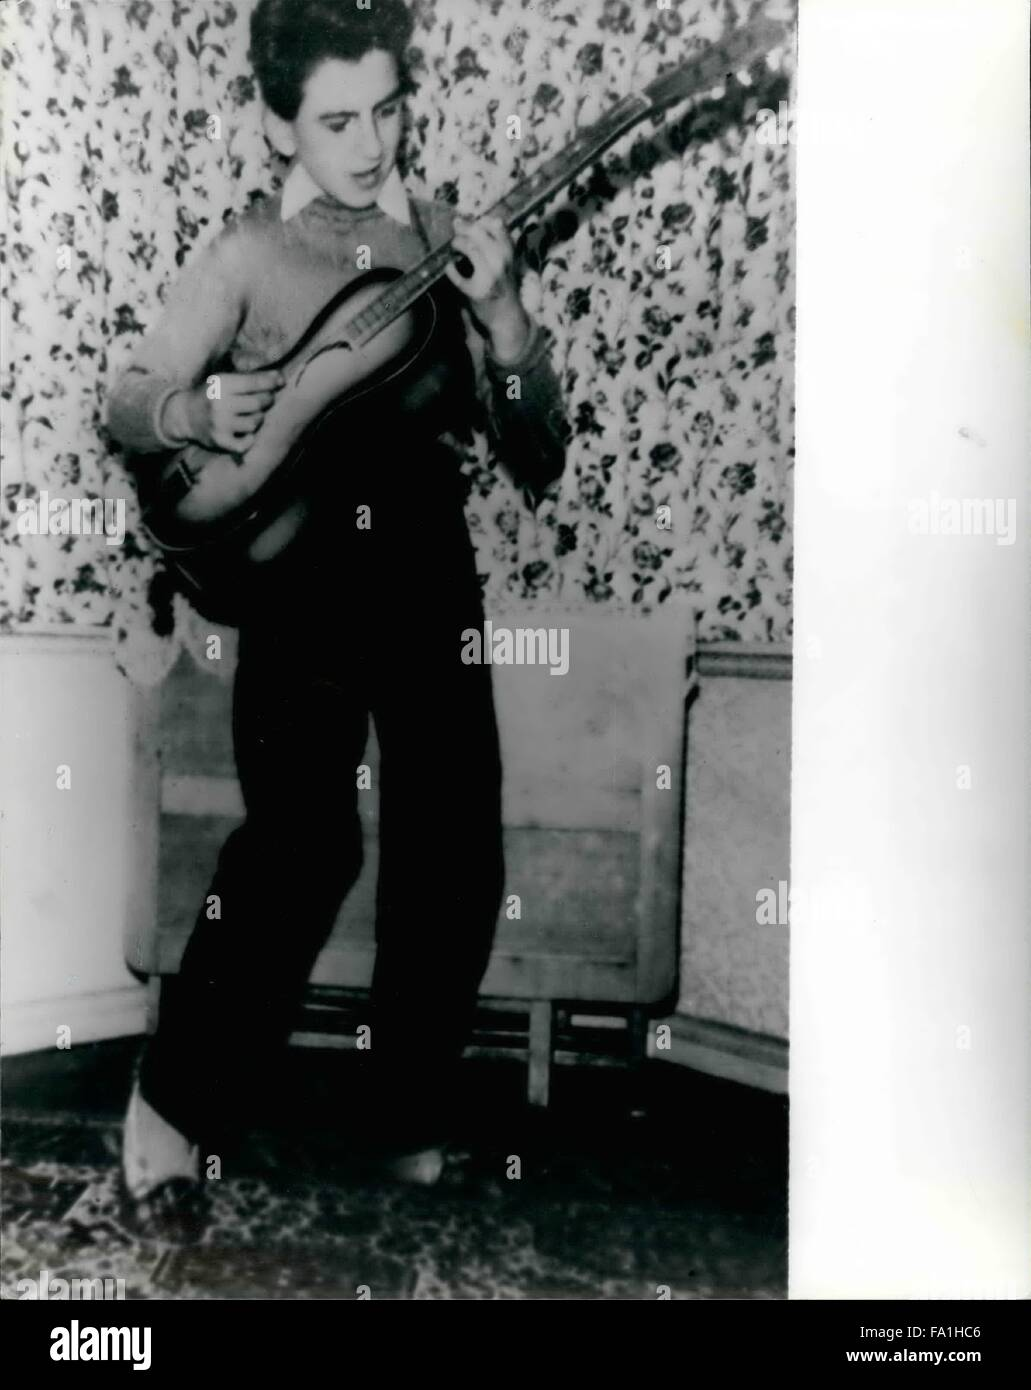 1955 - childhood At home in Liverpool - 13 years ago - George Harrison plays his first guitar, his age? 12. © - Stock Image